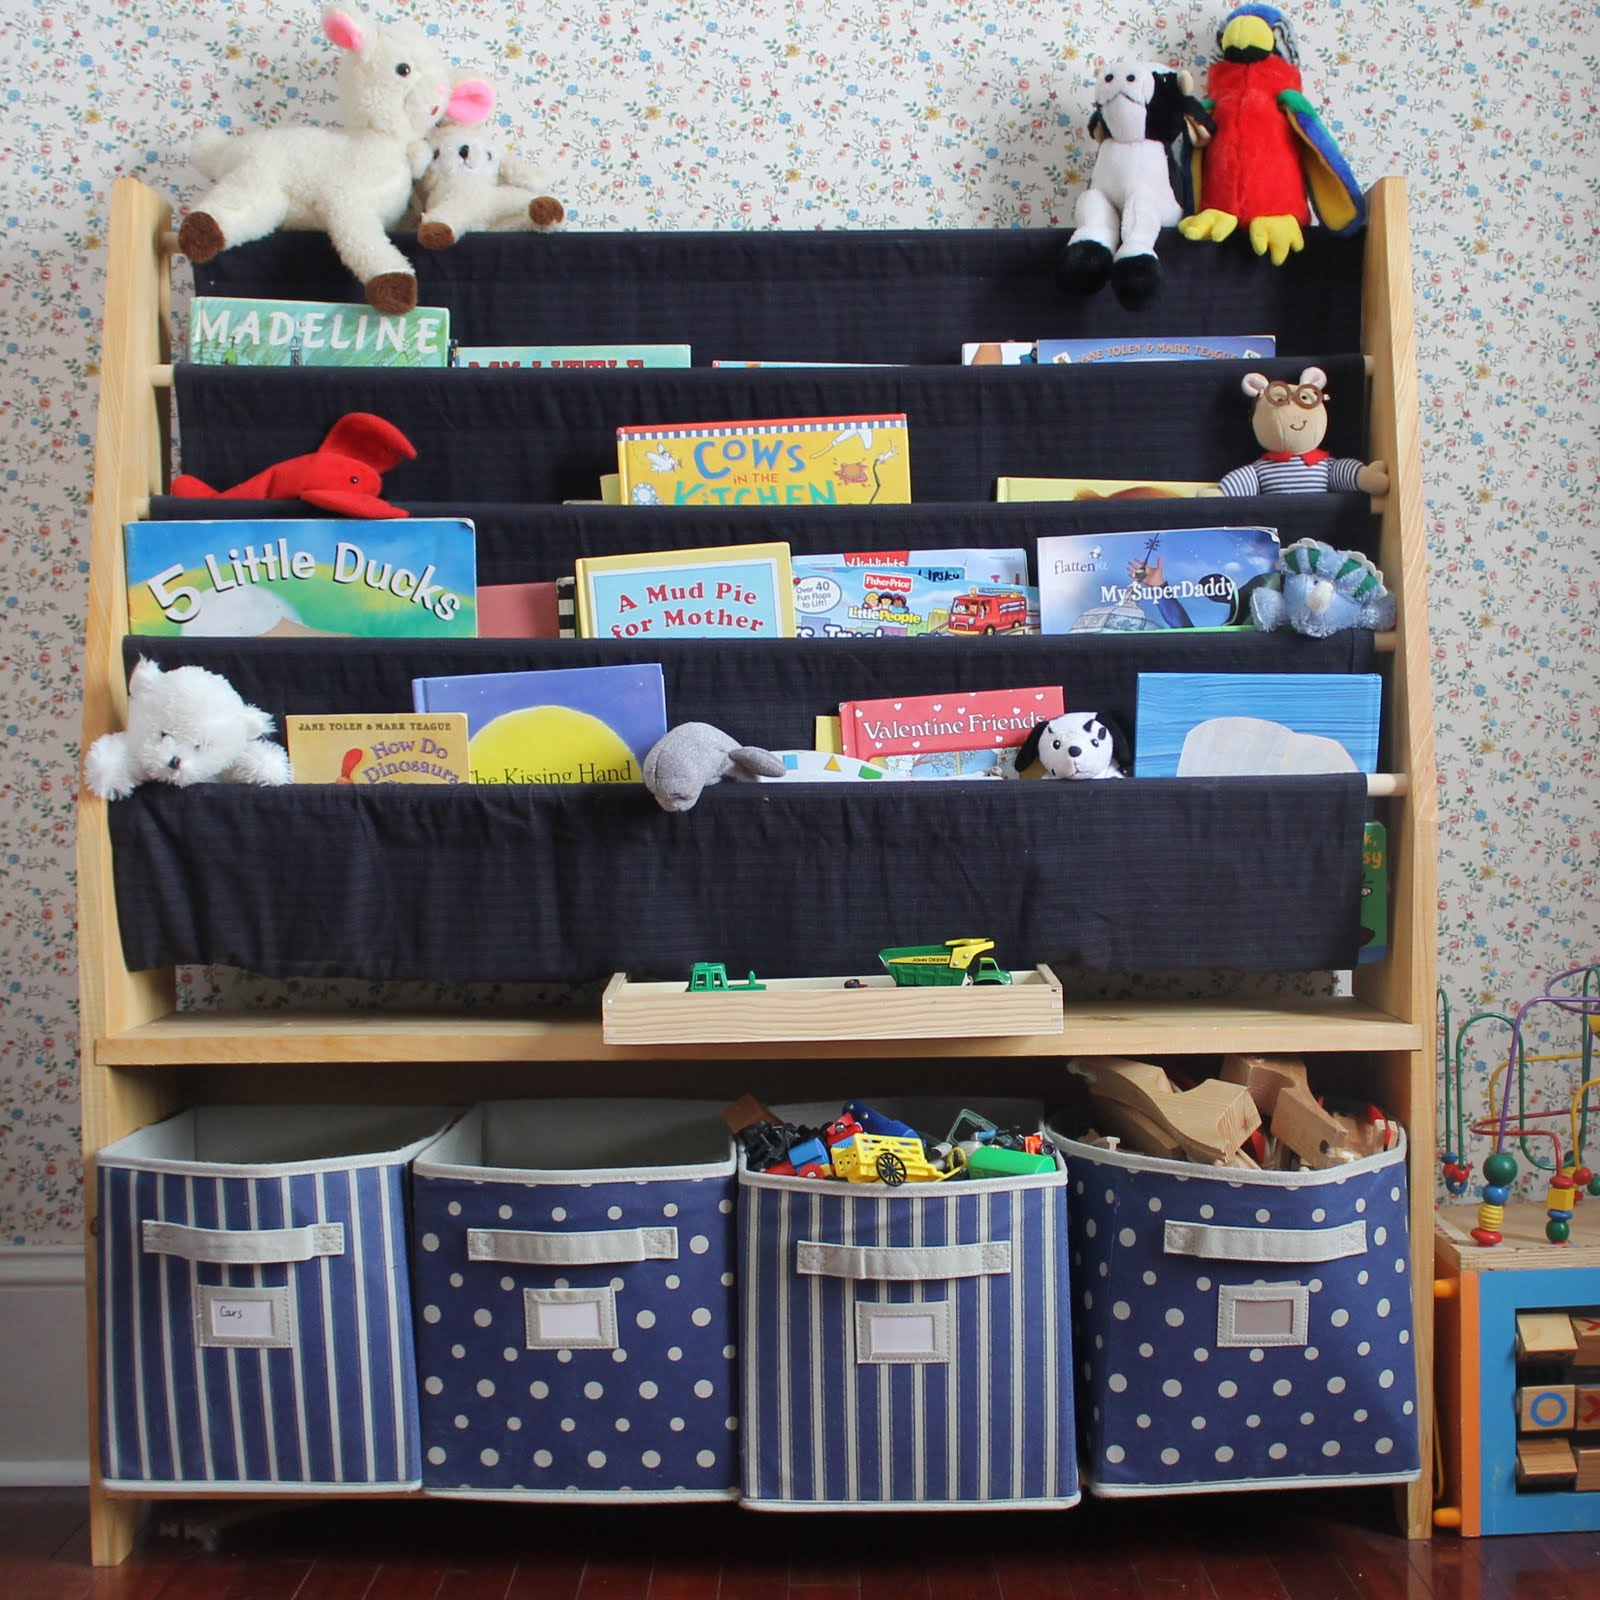 born imaginative sling bookshelf with storage bins for kids